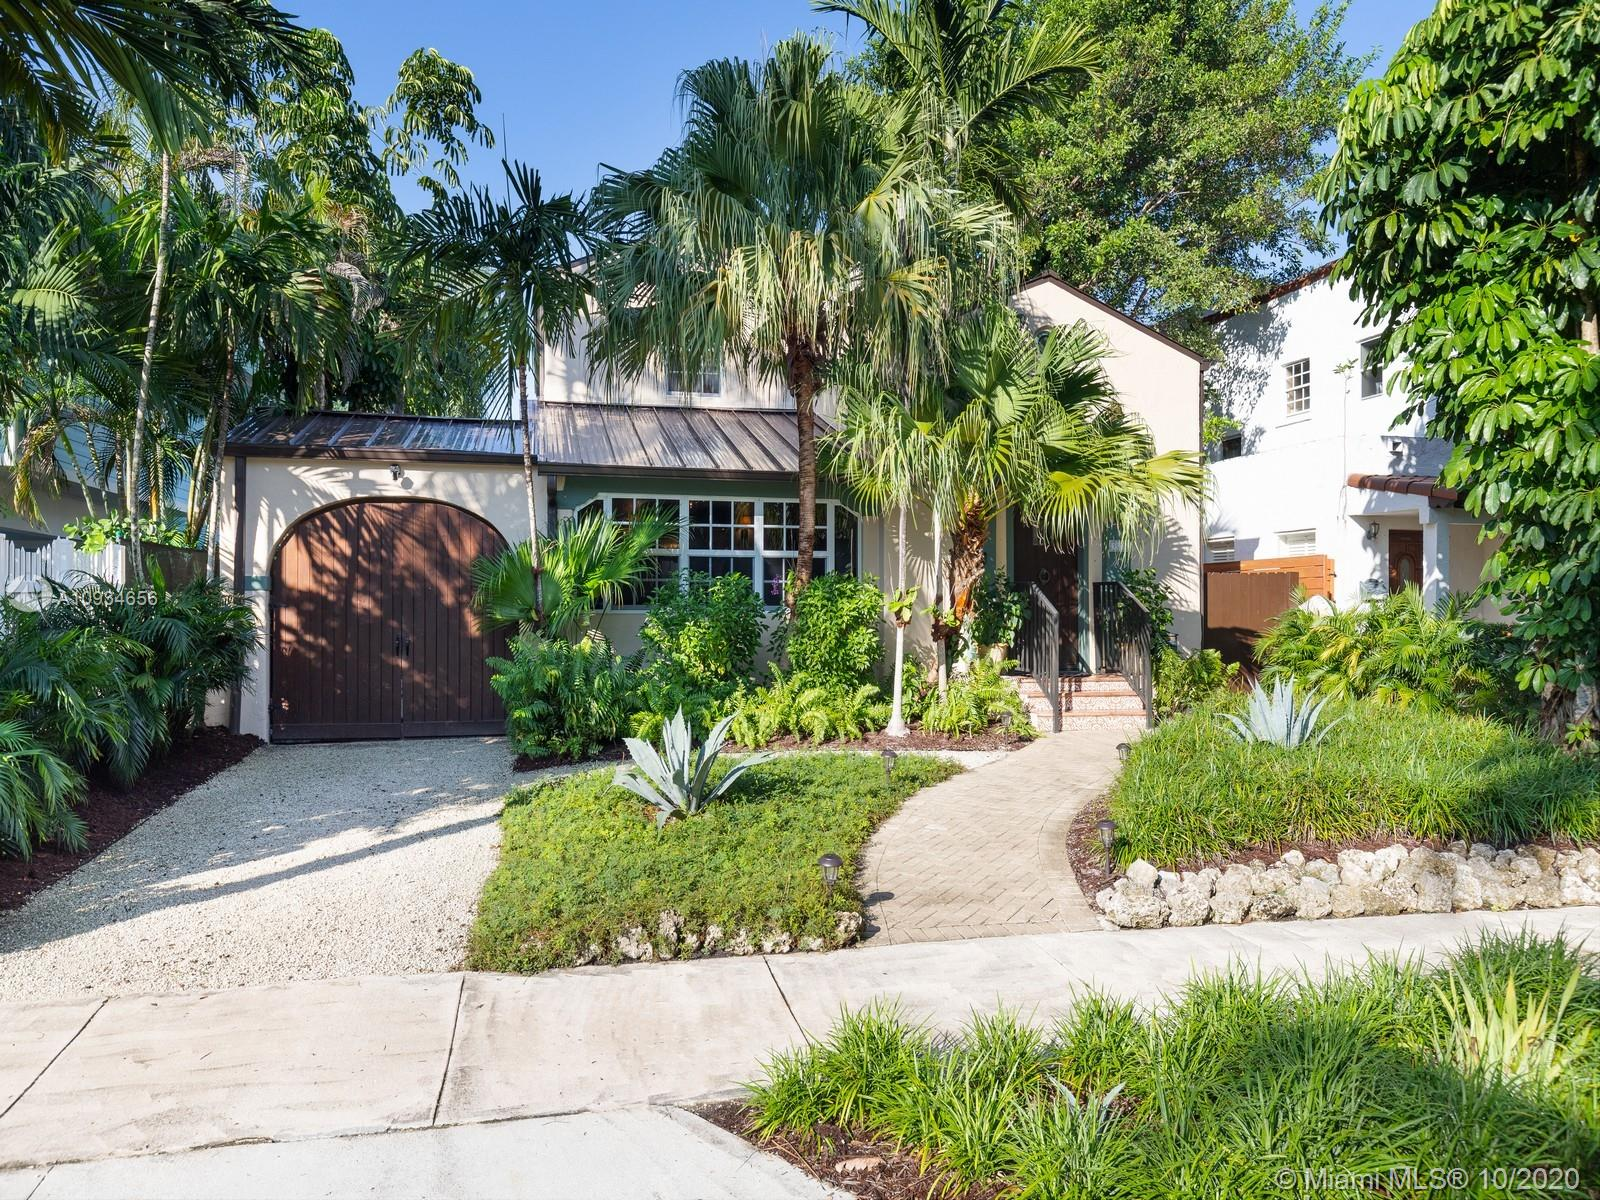 3520 Crystal Ct, Miami, Florida 33133, 3 Bedrooms Bedrooms, ,4 BathroomsBathrooms,Residential,For Sale,3520 Crystal Ct,A10934656